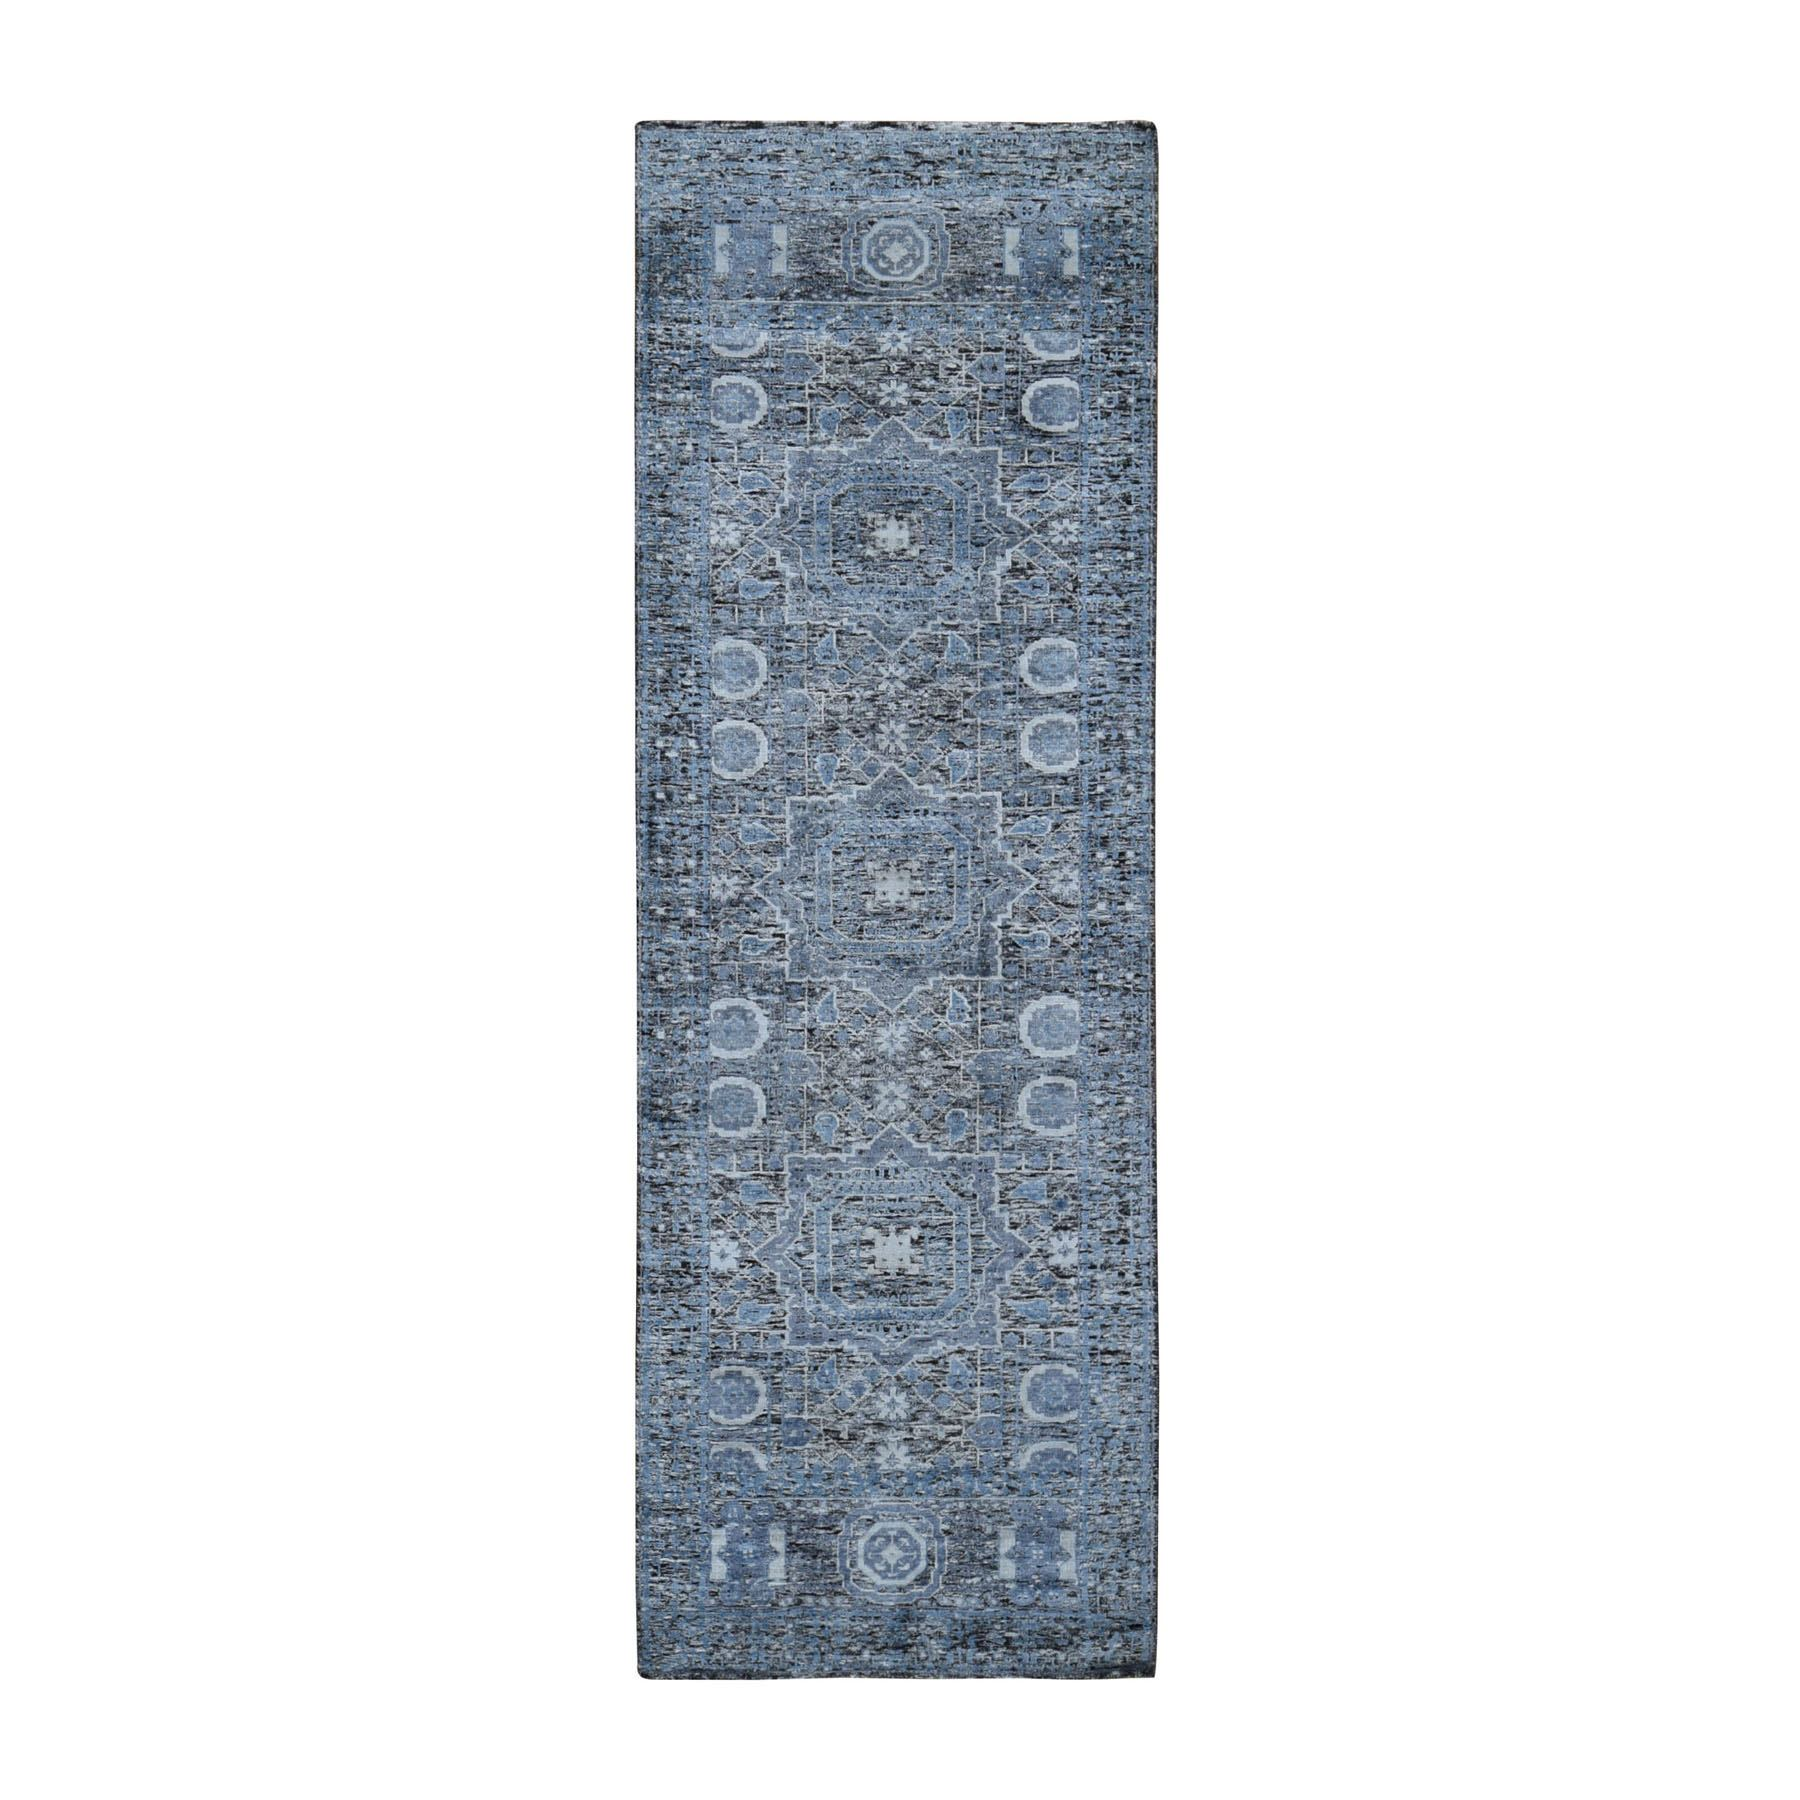 "2'7""X8'1"" Silk With Textured Wool Hi-Low Pile Mamluk Design Hand Knotted Runner Oriental Rug moad9de6"